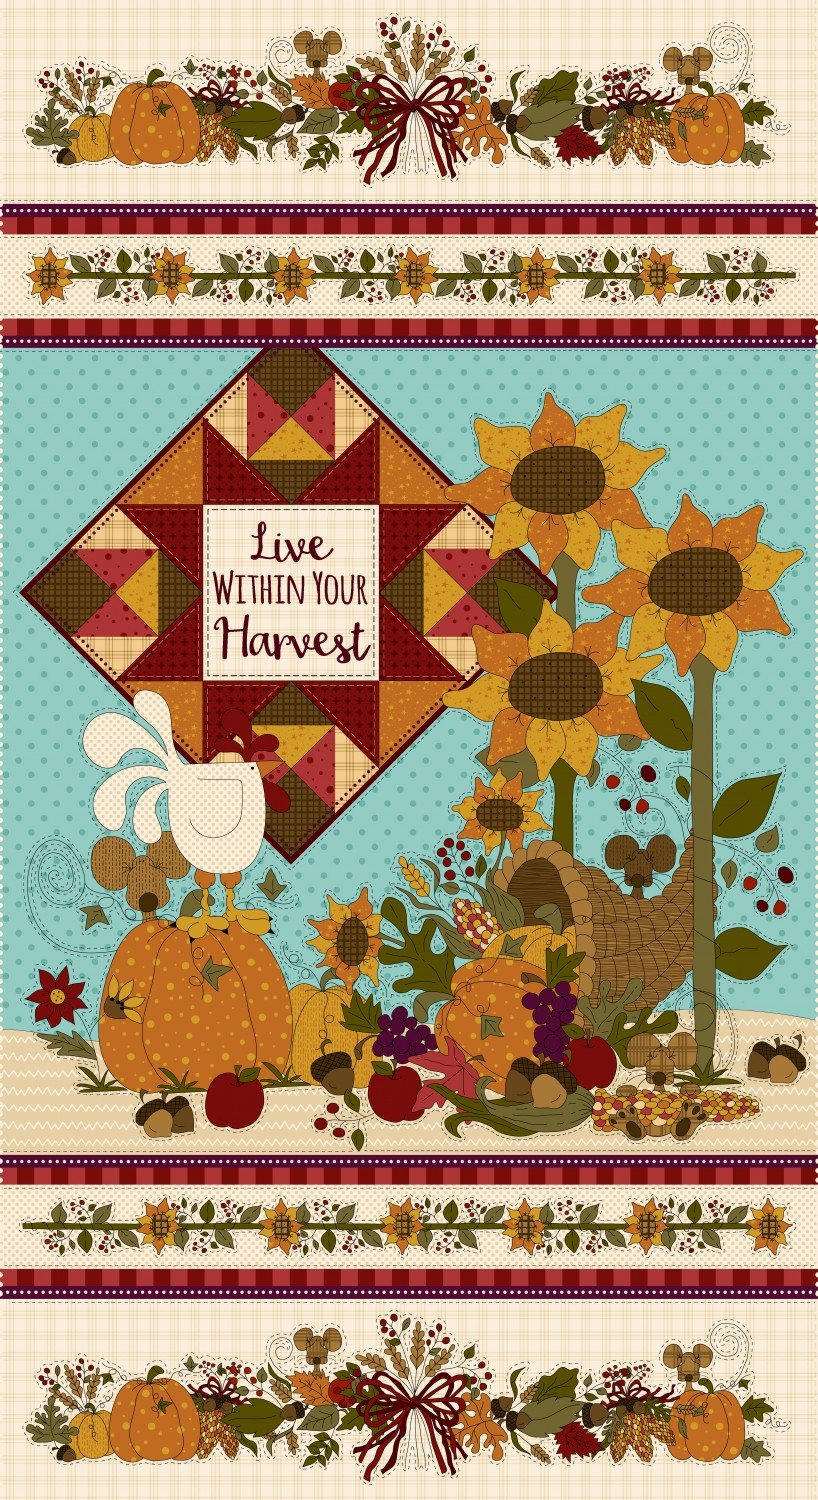 Live Within Your Harvest 7181-44 Panel